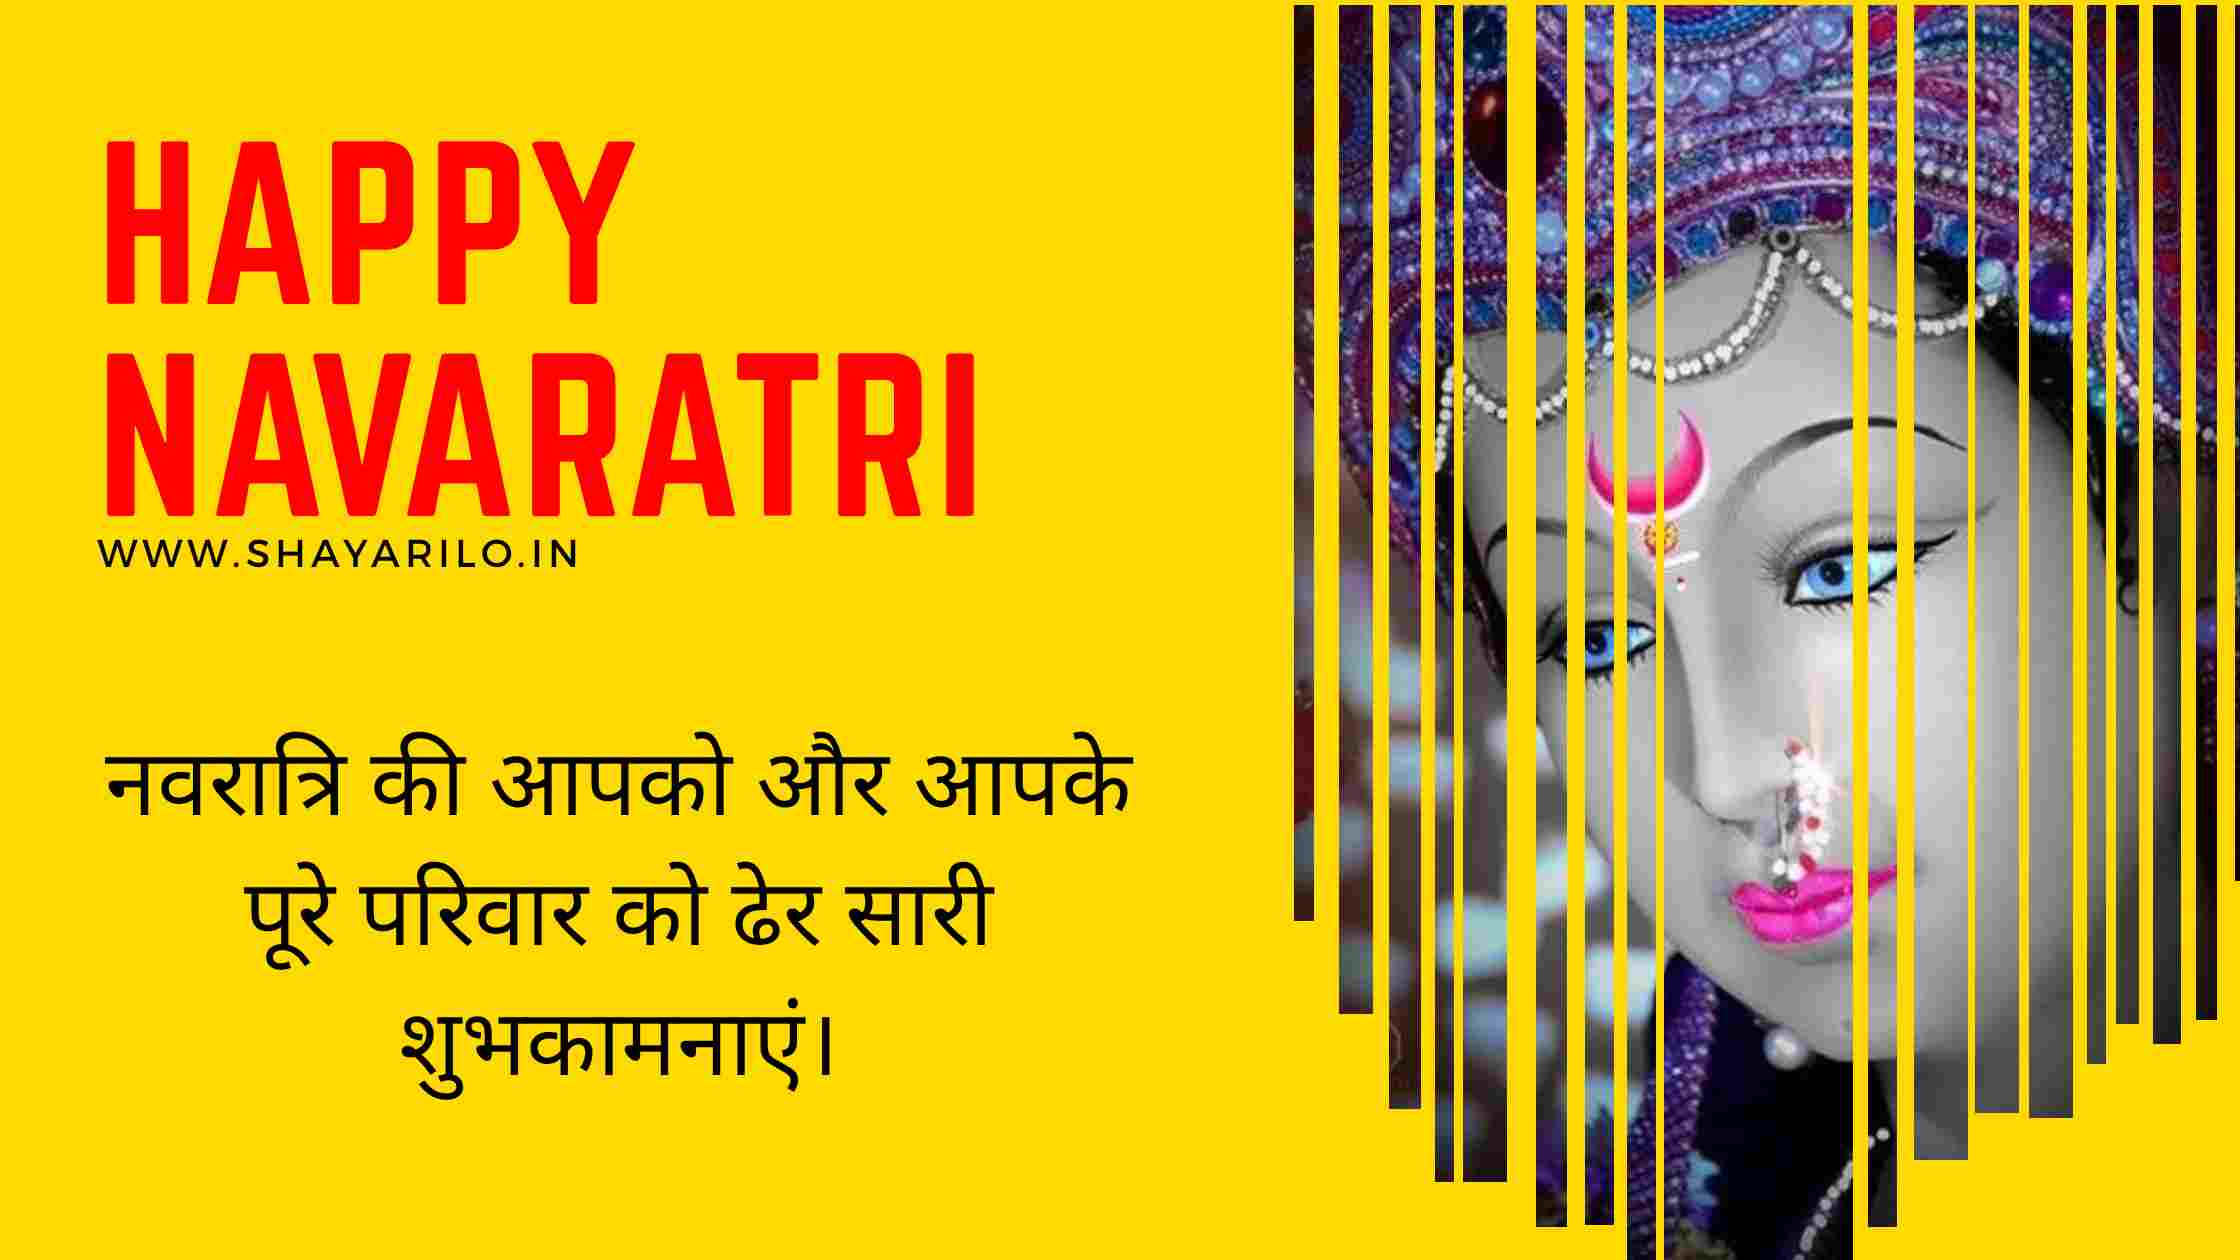 Navratri wishes and greetings 01